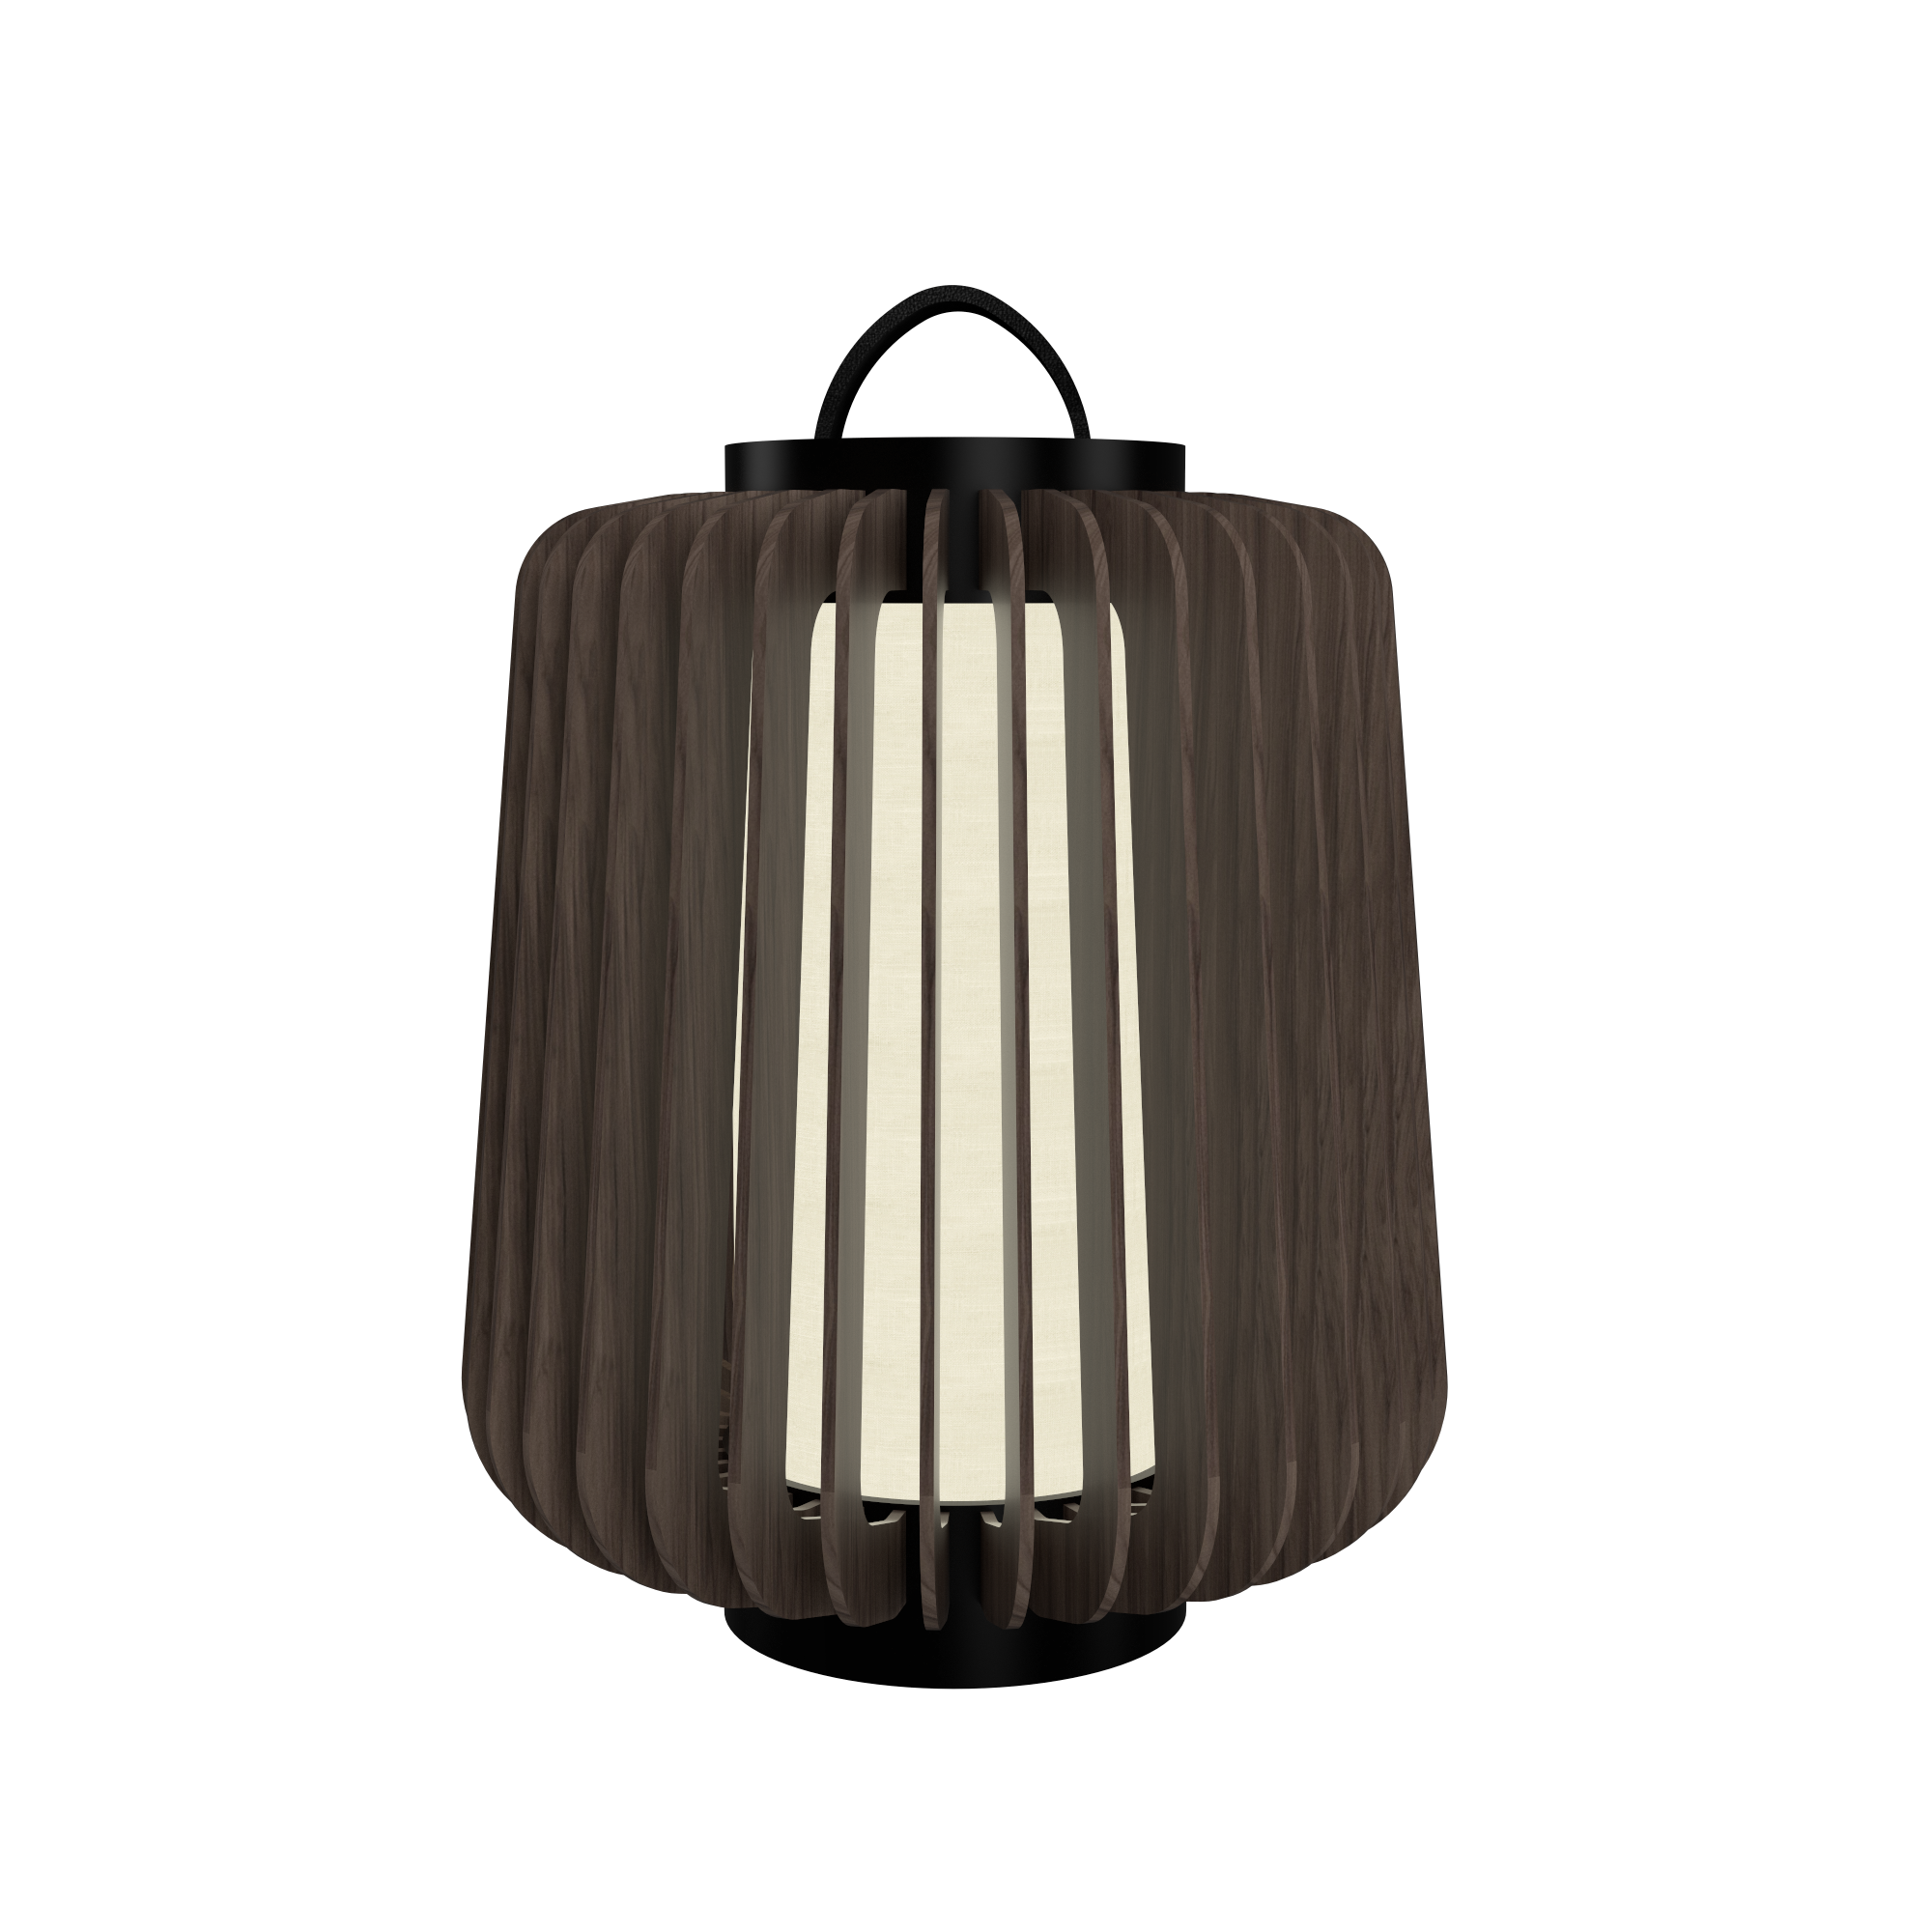 Floor Lamp Accord Stecche Di Legno 3035 - Stecche Di Legno Line Accord Lighting | 18. American Walnut